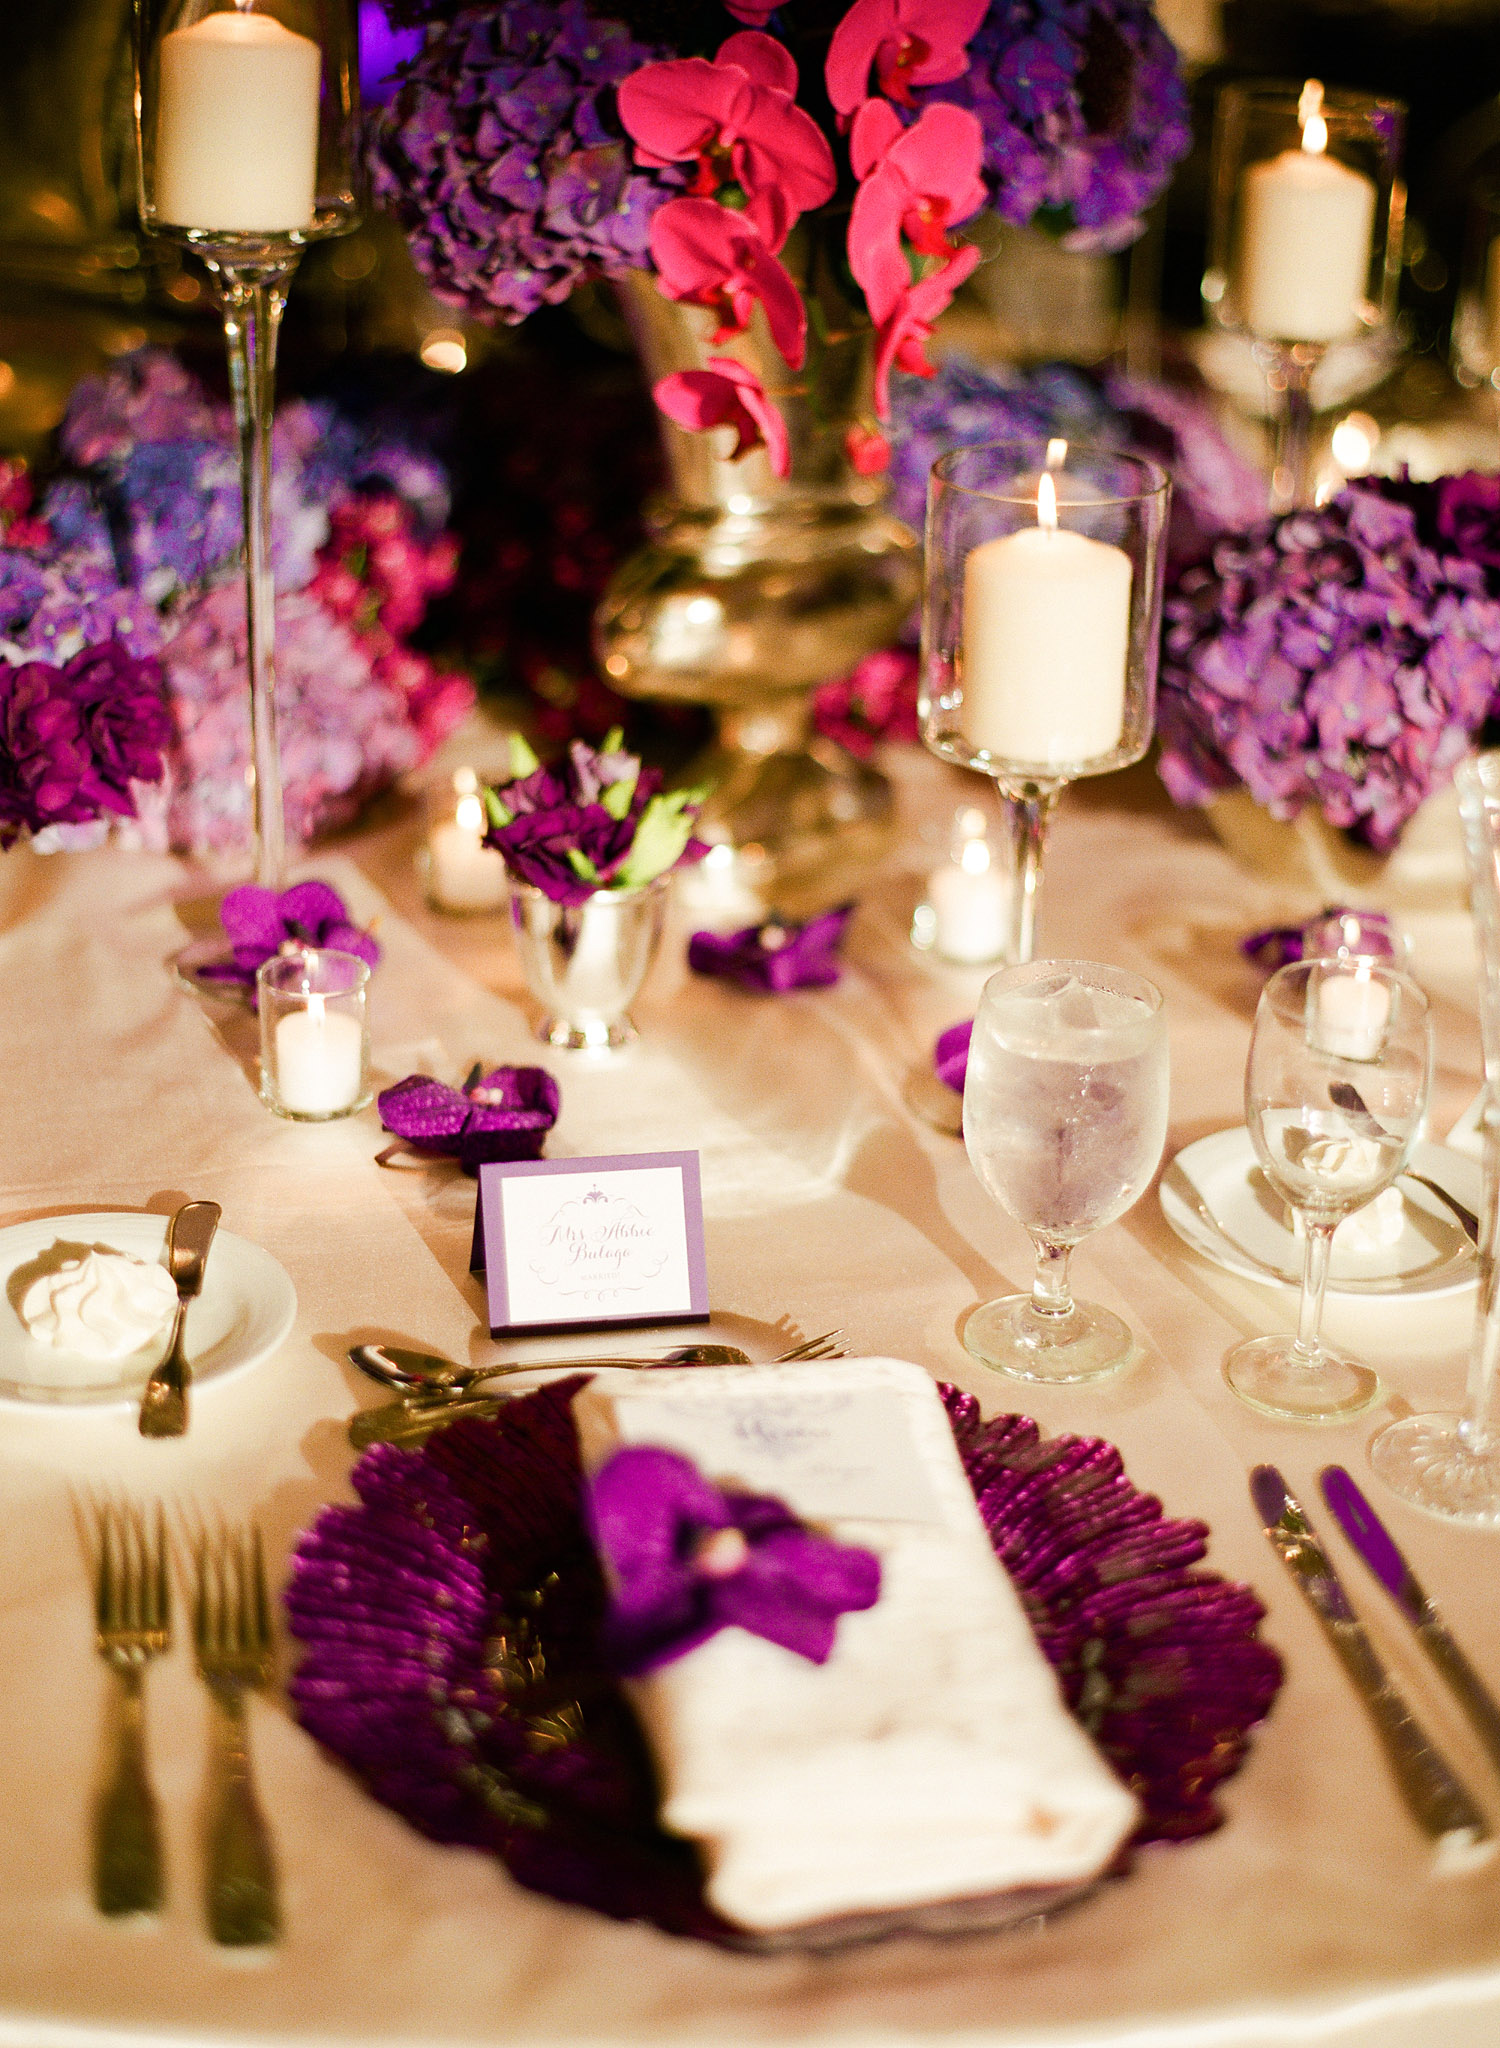 DESTINATION WEDDING PHOTOGRAPHER LEXIA FRANK PHOTOGRAPHS PRO FOOTBALL PLAYER BRYAN BULAGA OF THE GREEN BAY PACKERS WEDDING AT THE HILTON CITY CENTER IN MILWAUKEE WISCONSIN. RECEPTION PLACE SETTINGS PURPLE WITH GOLD SHOT ON FILM